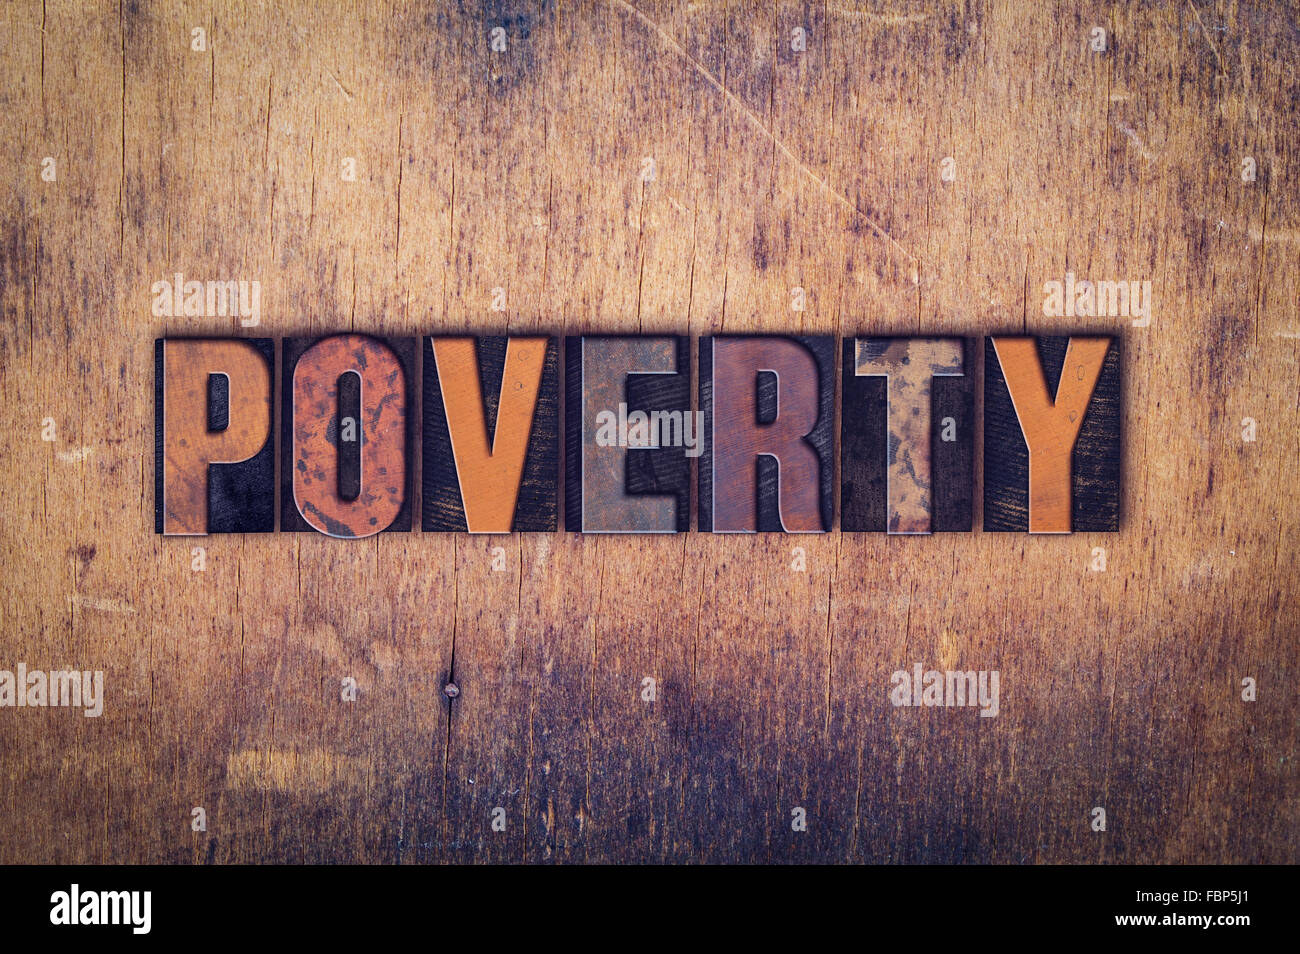 Watch furthermore Stock Photo Old Indian Homeless Woman 33032216 likewise Adam Sandler Dk5NyHepHBAxa likewise America Movie Poster 2009 in addition Stock Photo The Word Poverty Written In Dirty Vintage Letterpress Type On A Aged 93300425. on homeless shopping cart